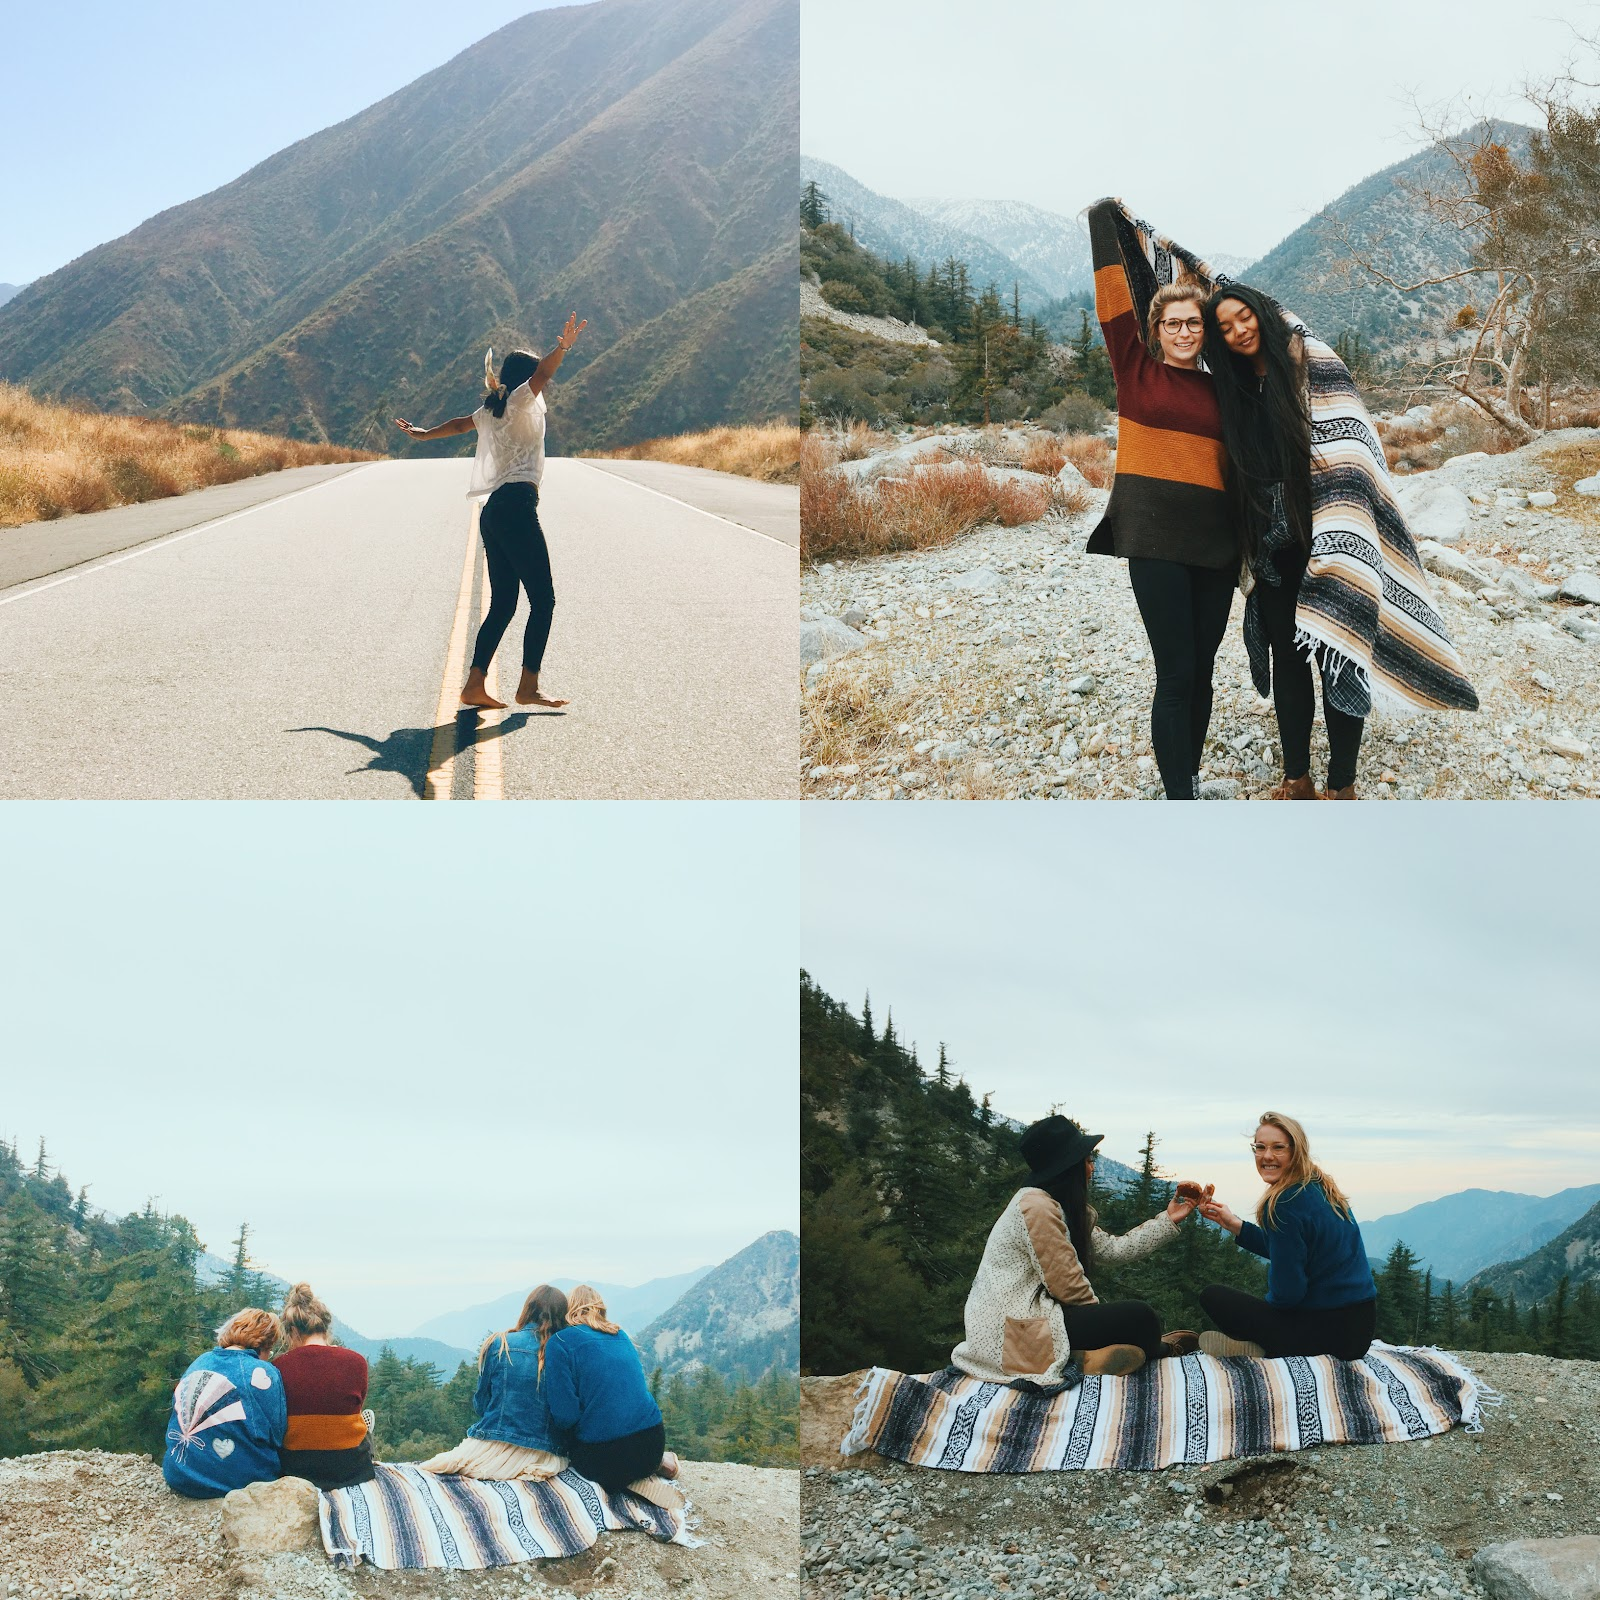 Mt. Baldy and Beautiful People